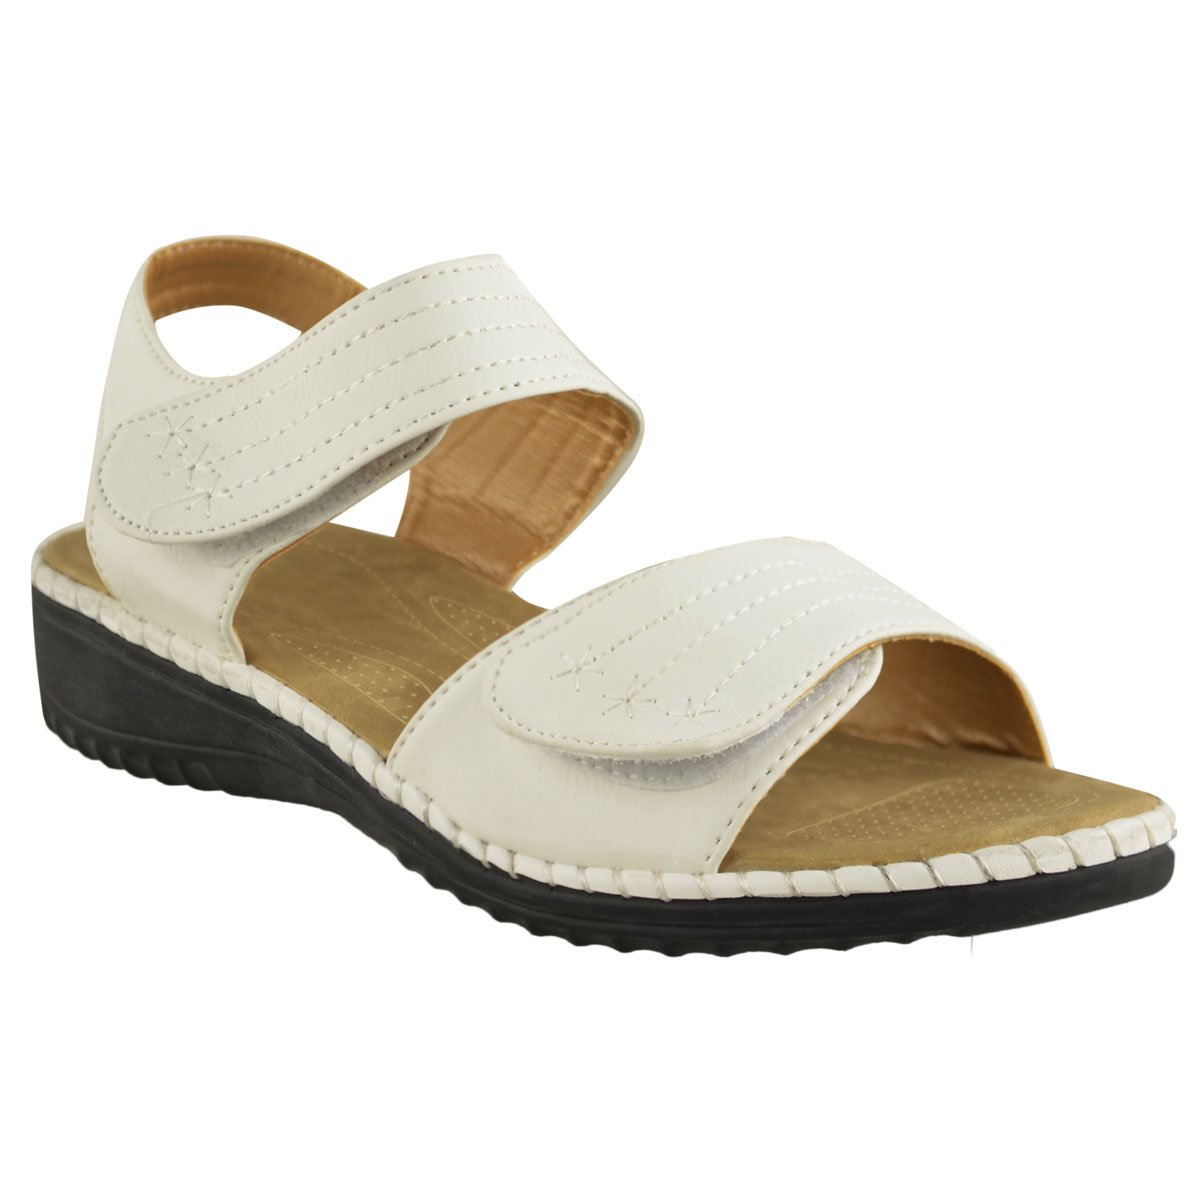 cfb9044a24f3a8 LADIES WOMENS VELCRO COMFORT CASUAL WALKING FLAT SUMMER SANDALS SIZE   Amazon.co.uk  Shoes   Bags